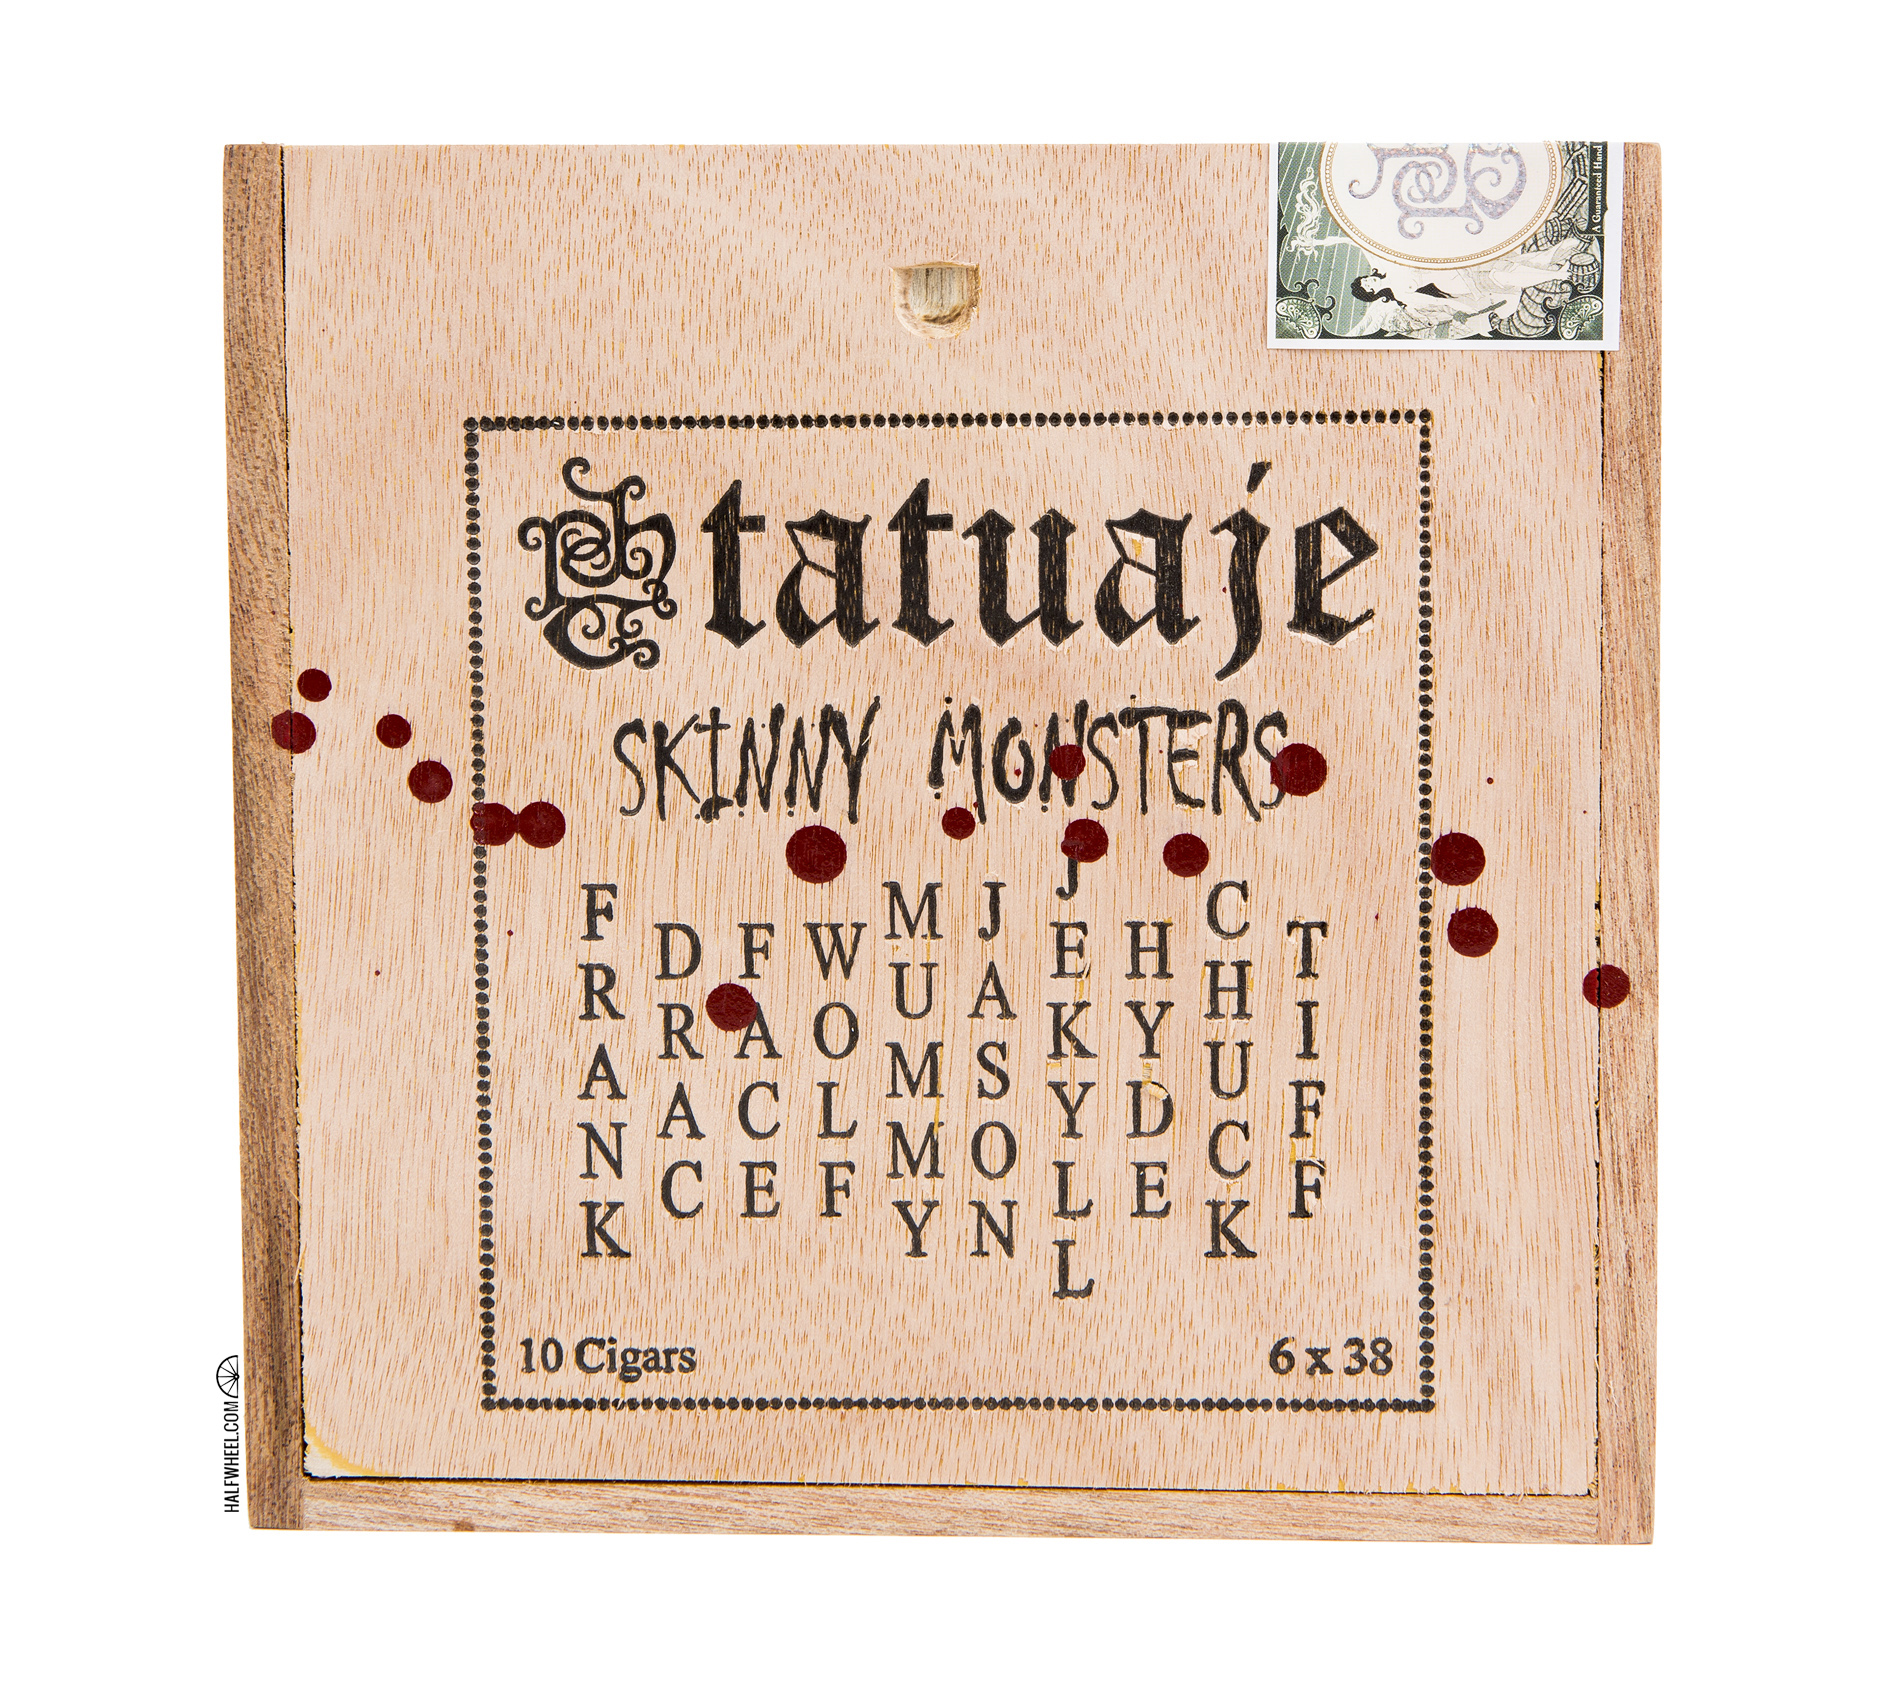 Tatuaje Skinny Monsters Box 1